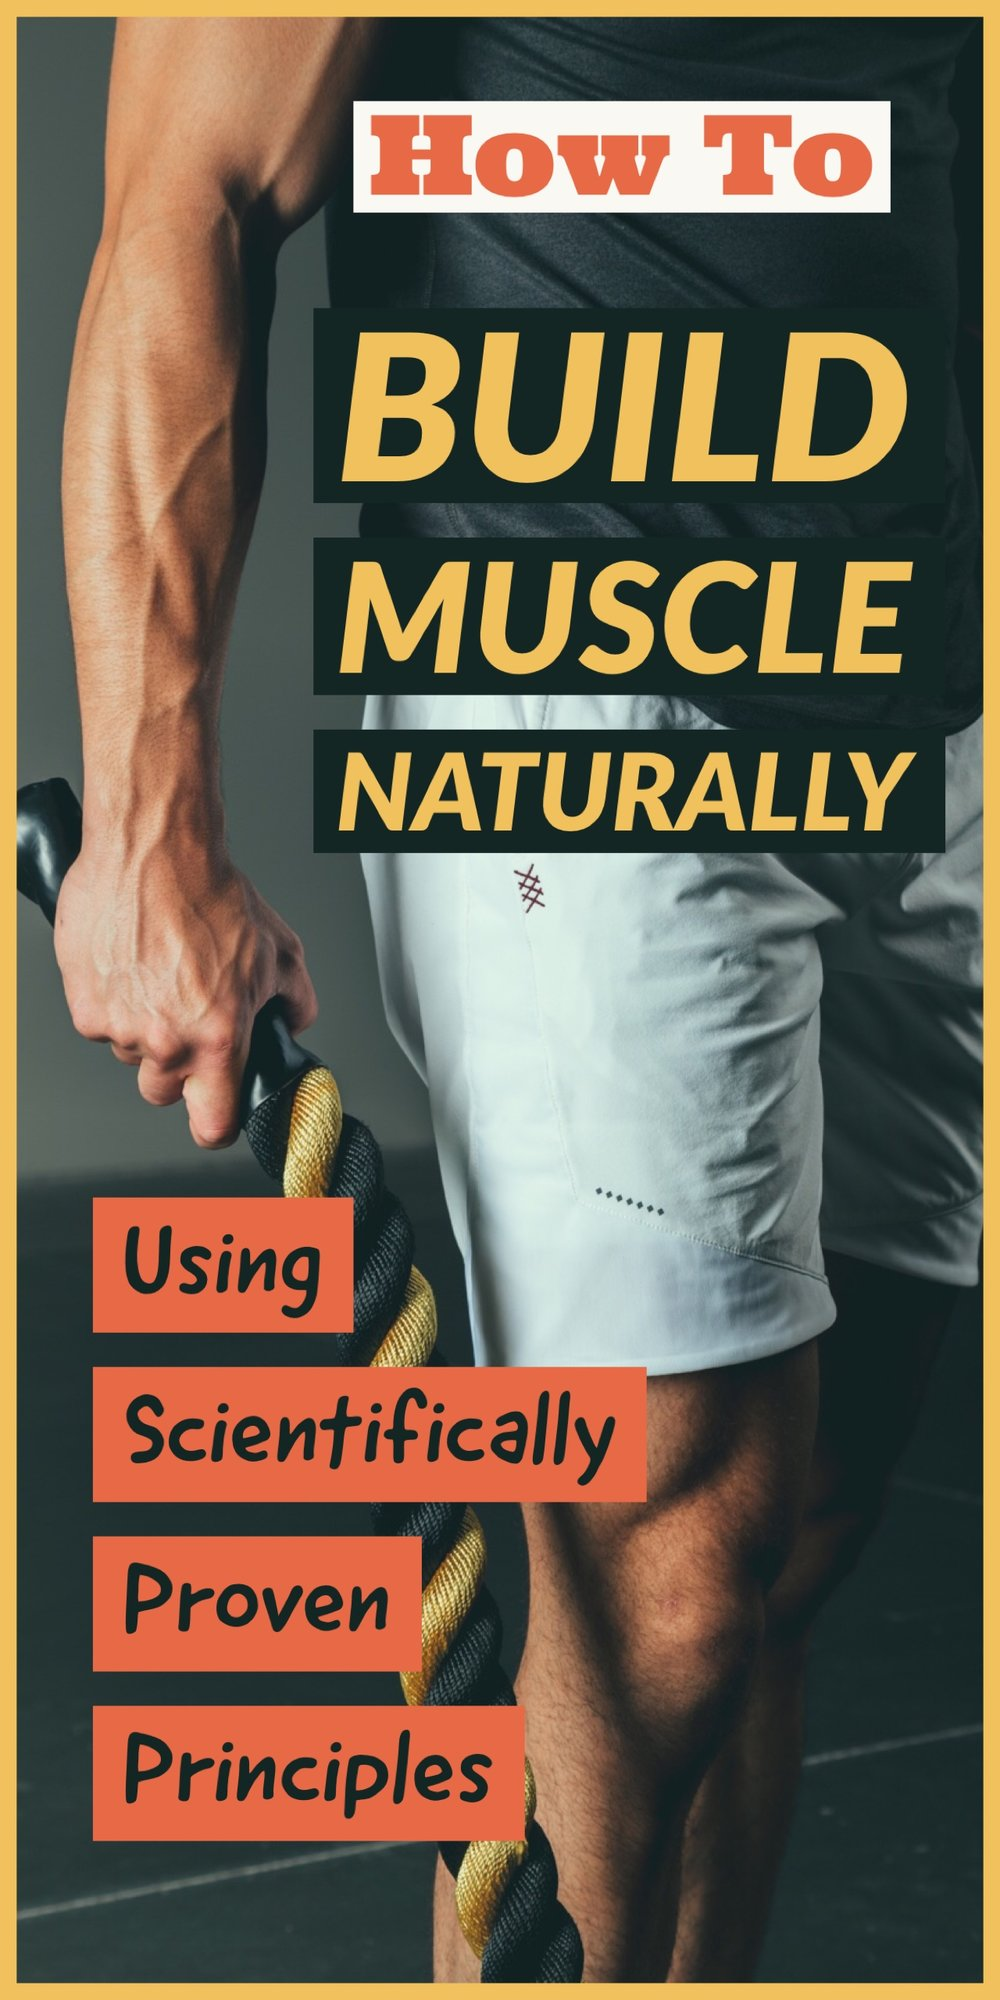 how-to-build-muscle-naturally